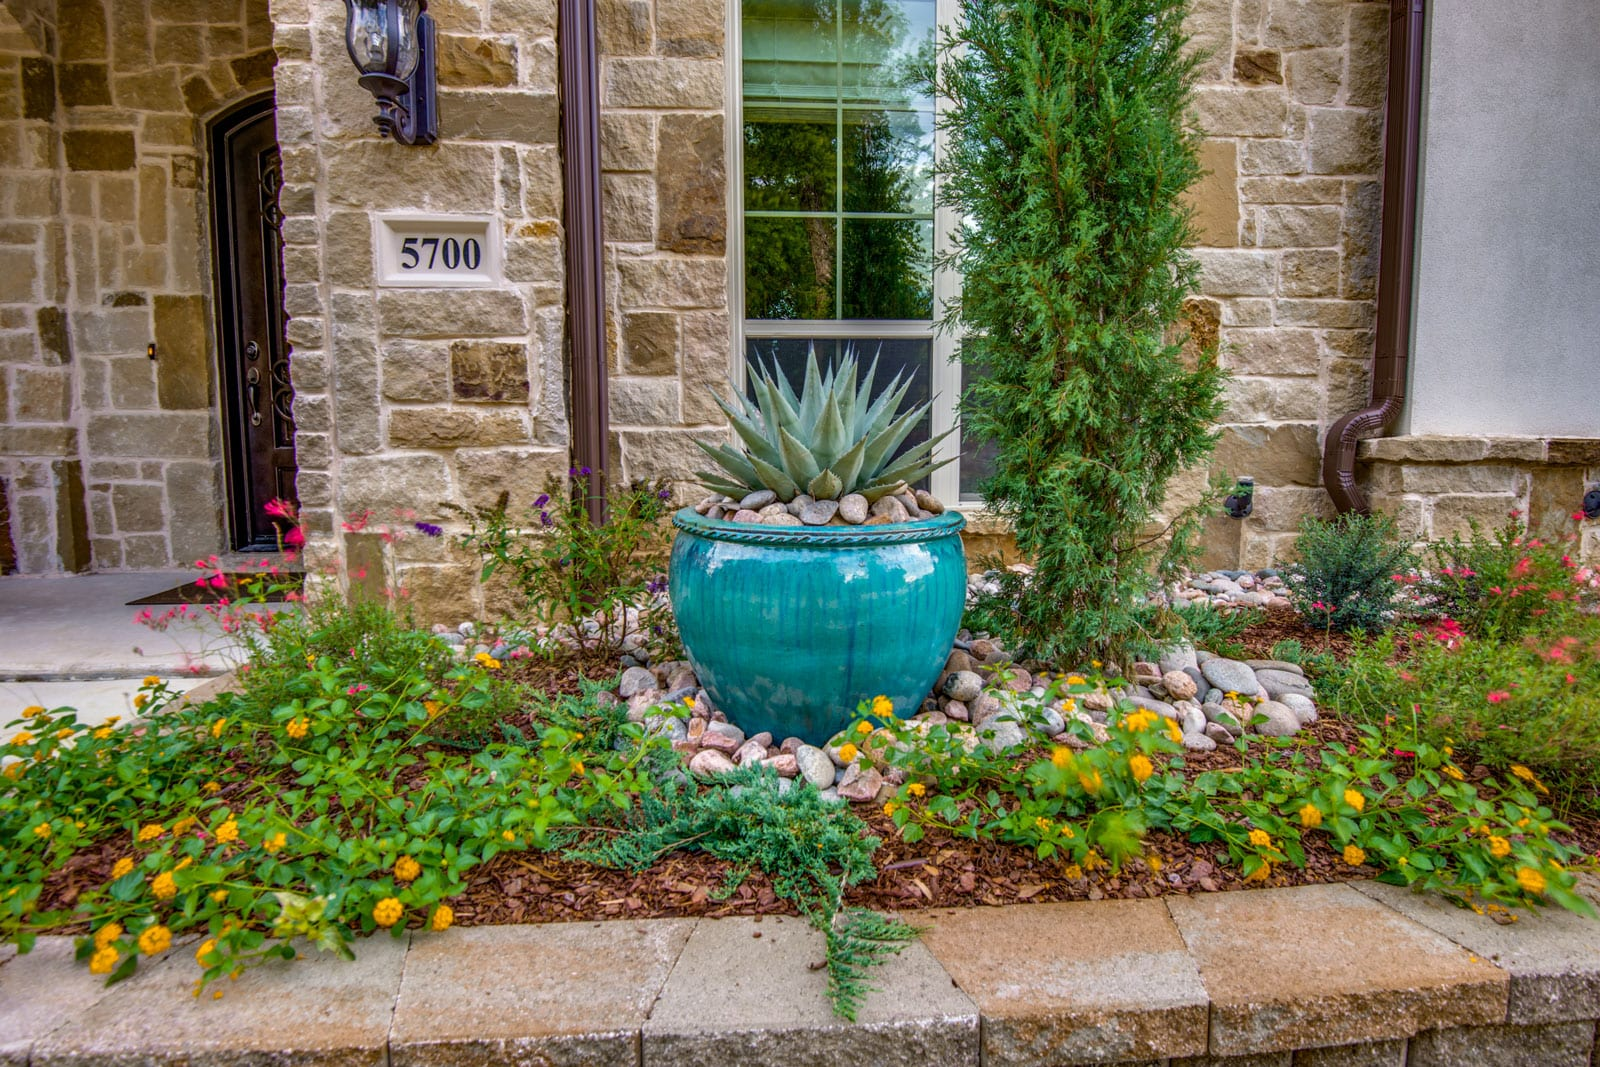 5700-squeezepenny-ln-mckinney-tx-High-Res-8